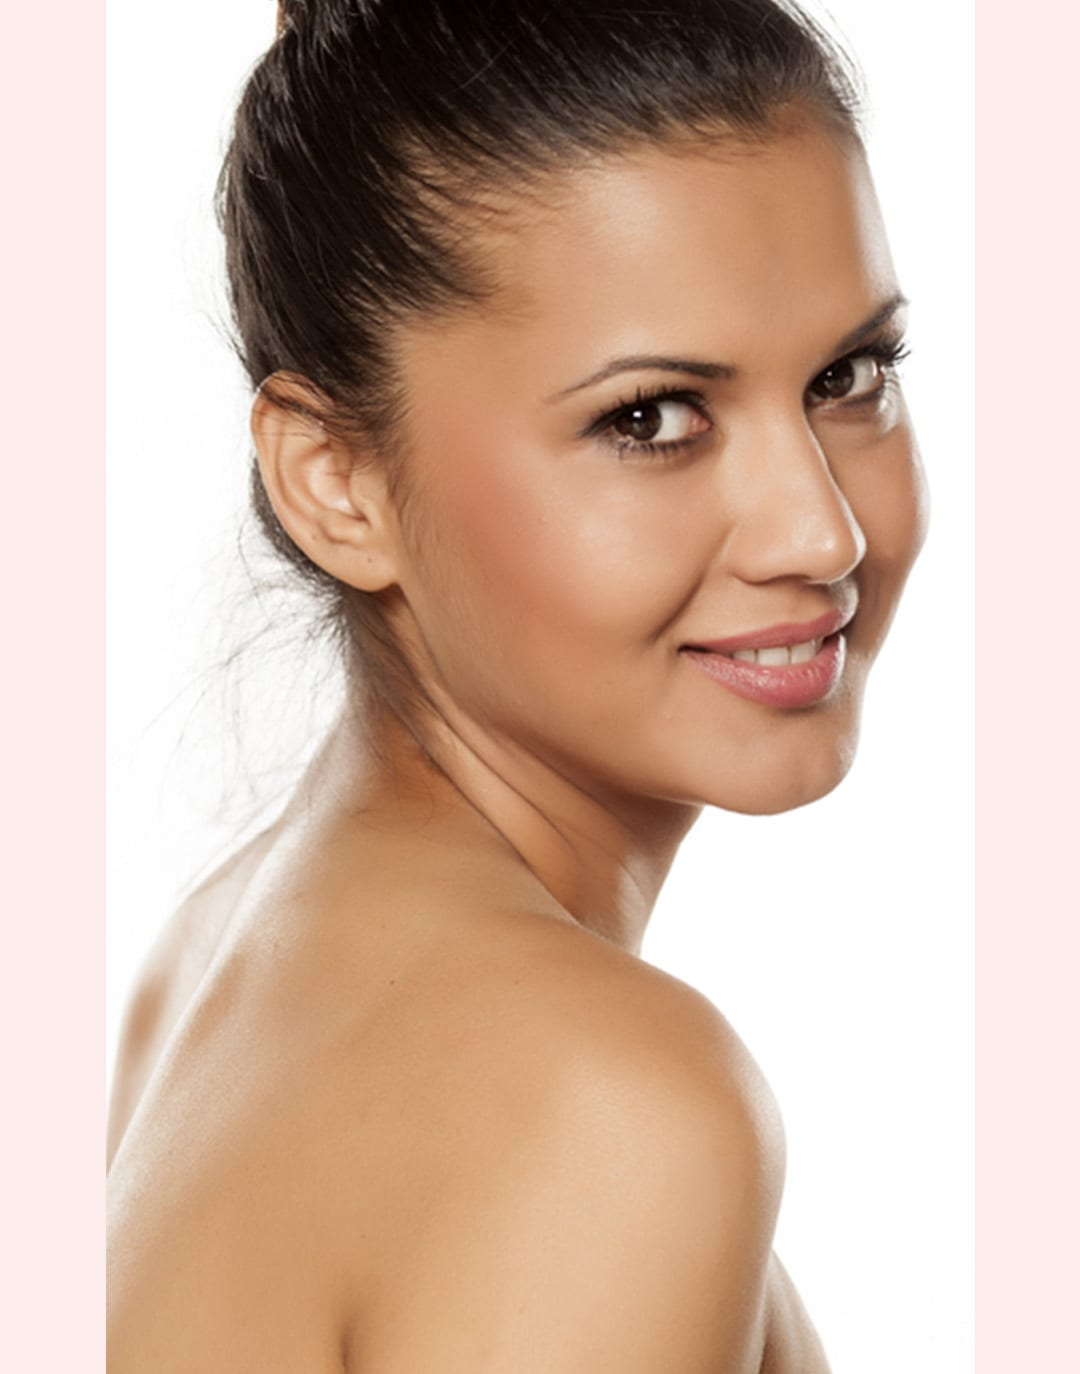 Skin Tightening with Ultherapy - Free Chest Treatment ($2500 value)!